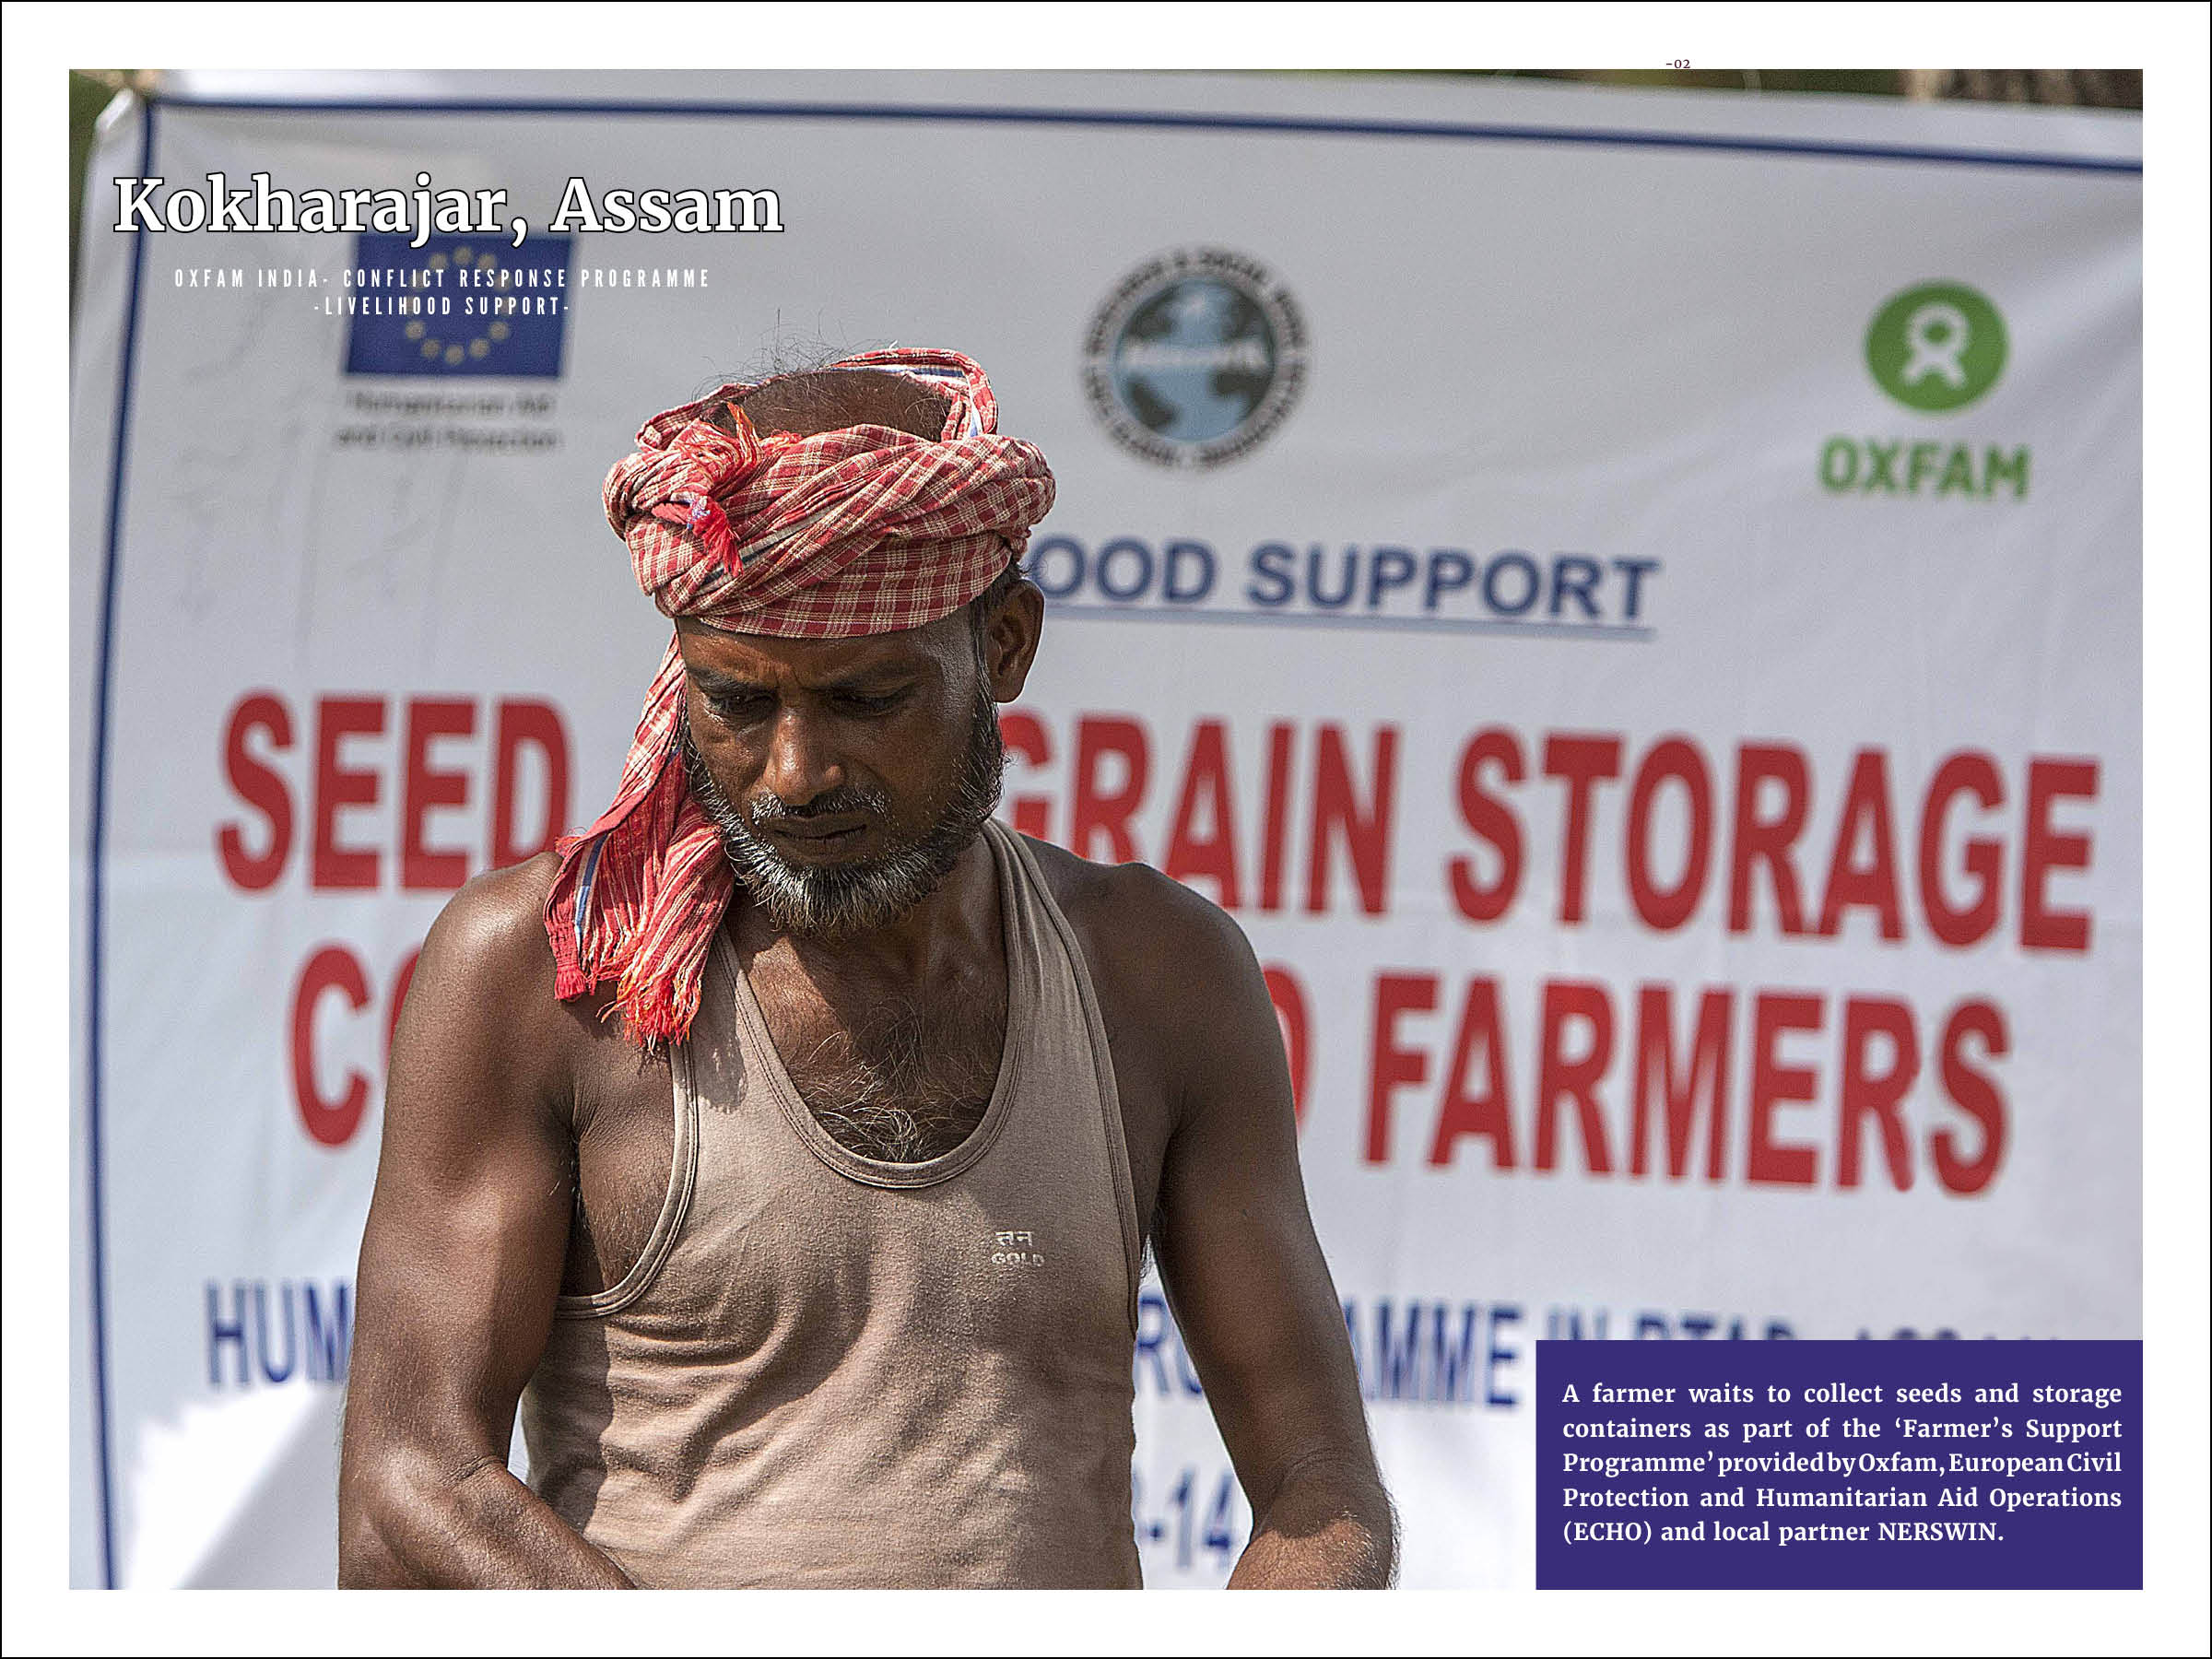 Oxfam India - Conflict Response Programme - Livelihood Support